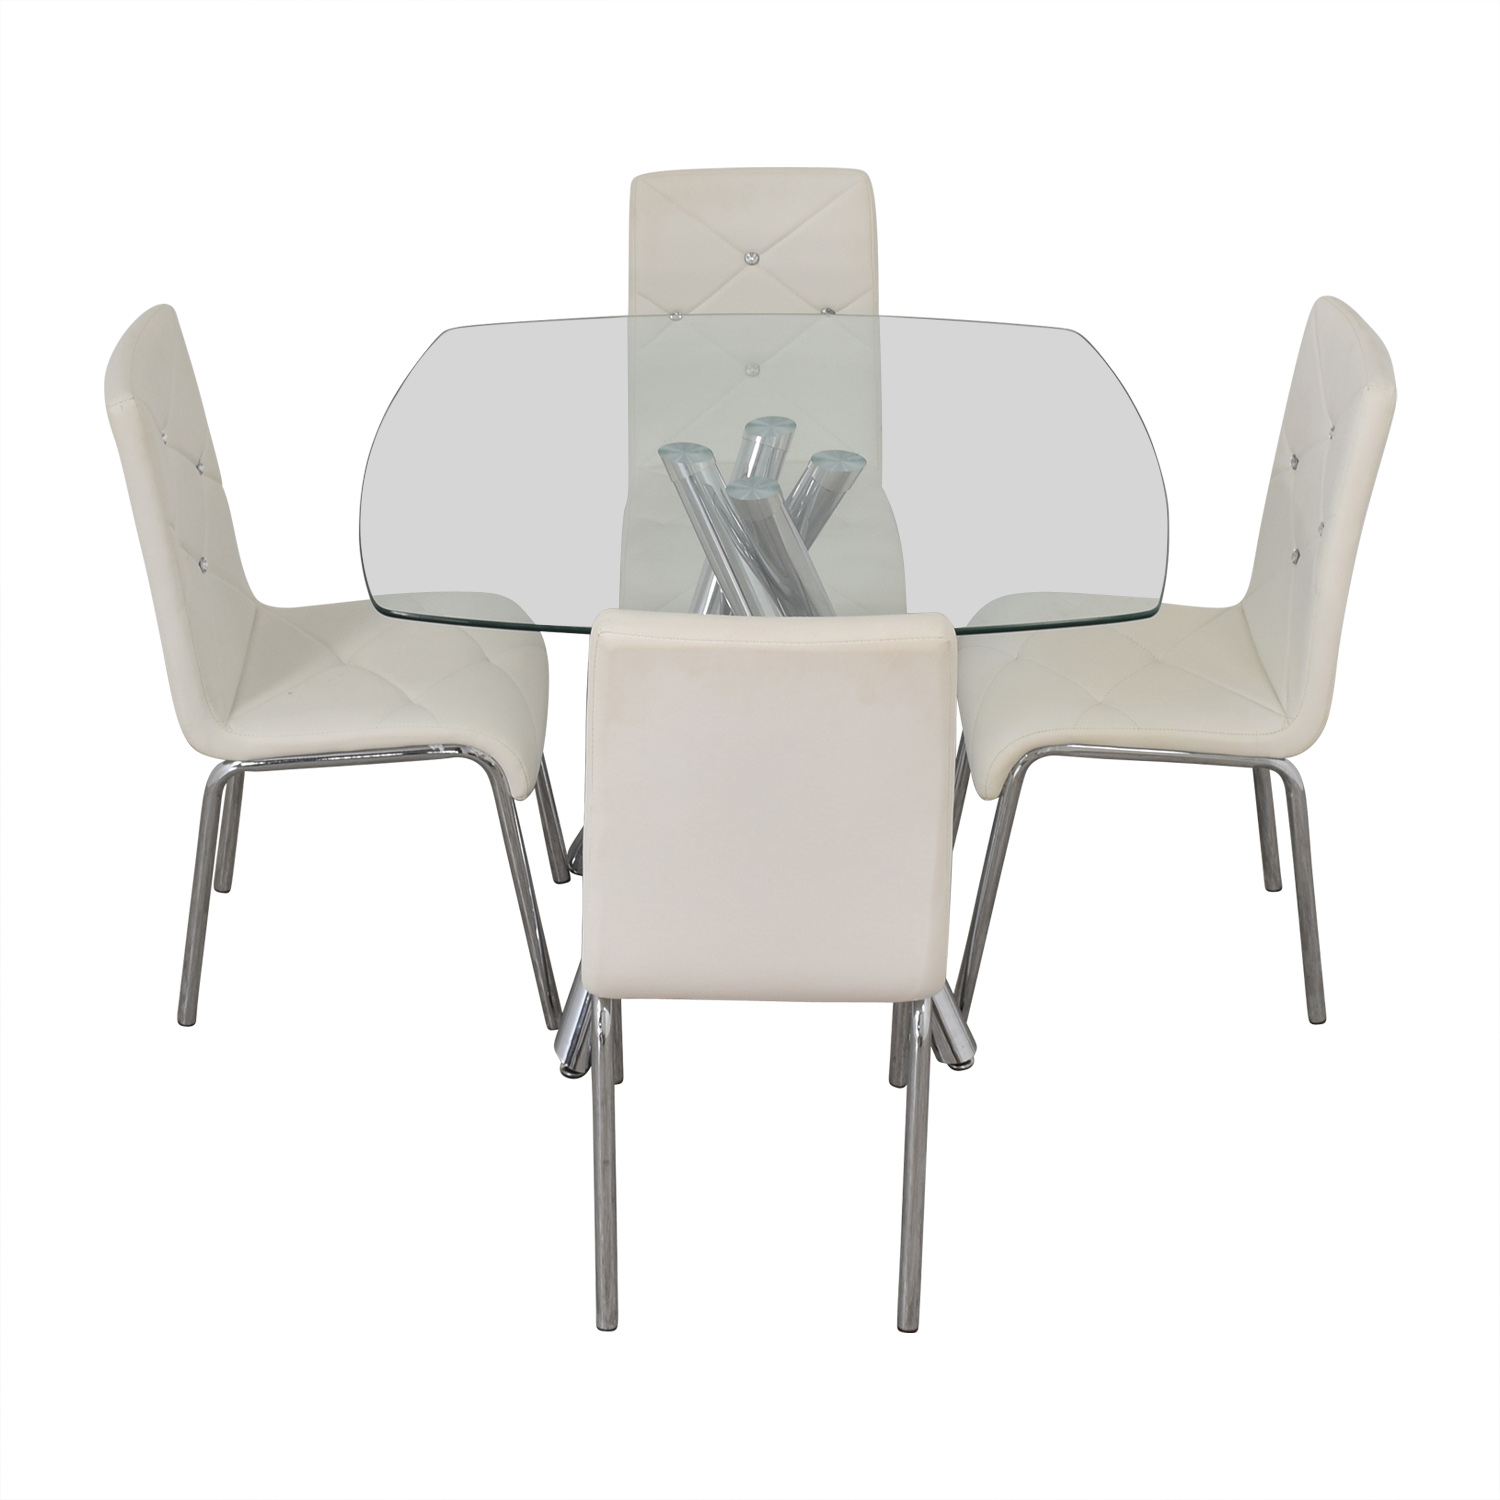 Glass and Chrome Dining Set with White Tufted Chairs